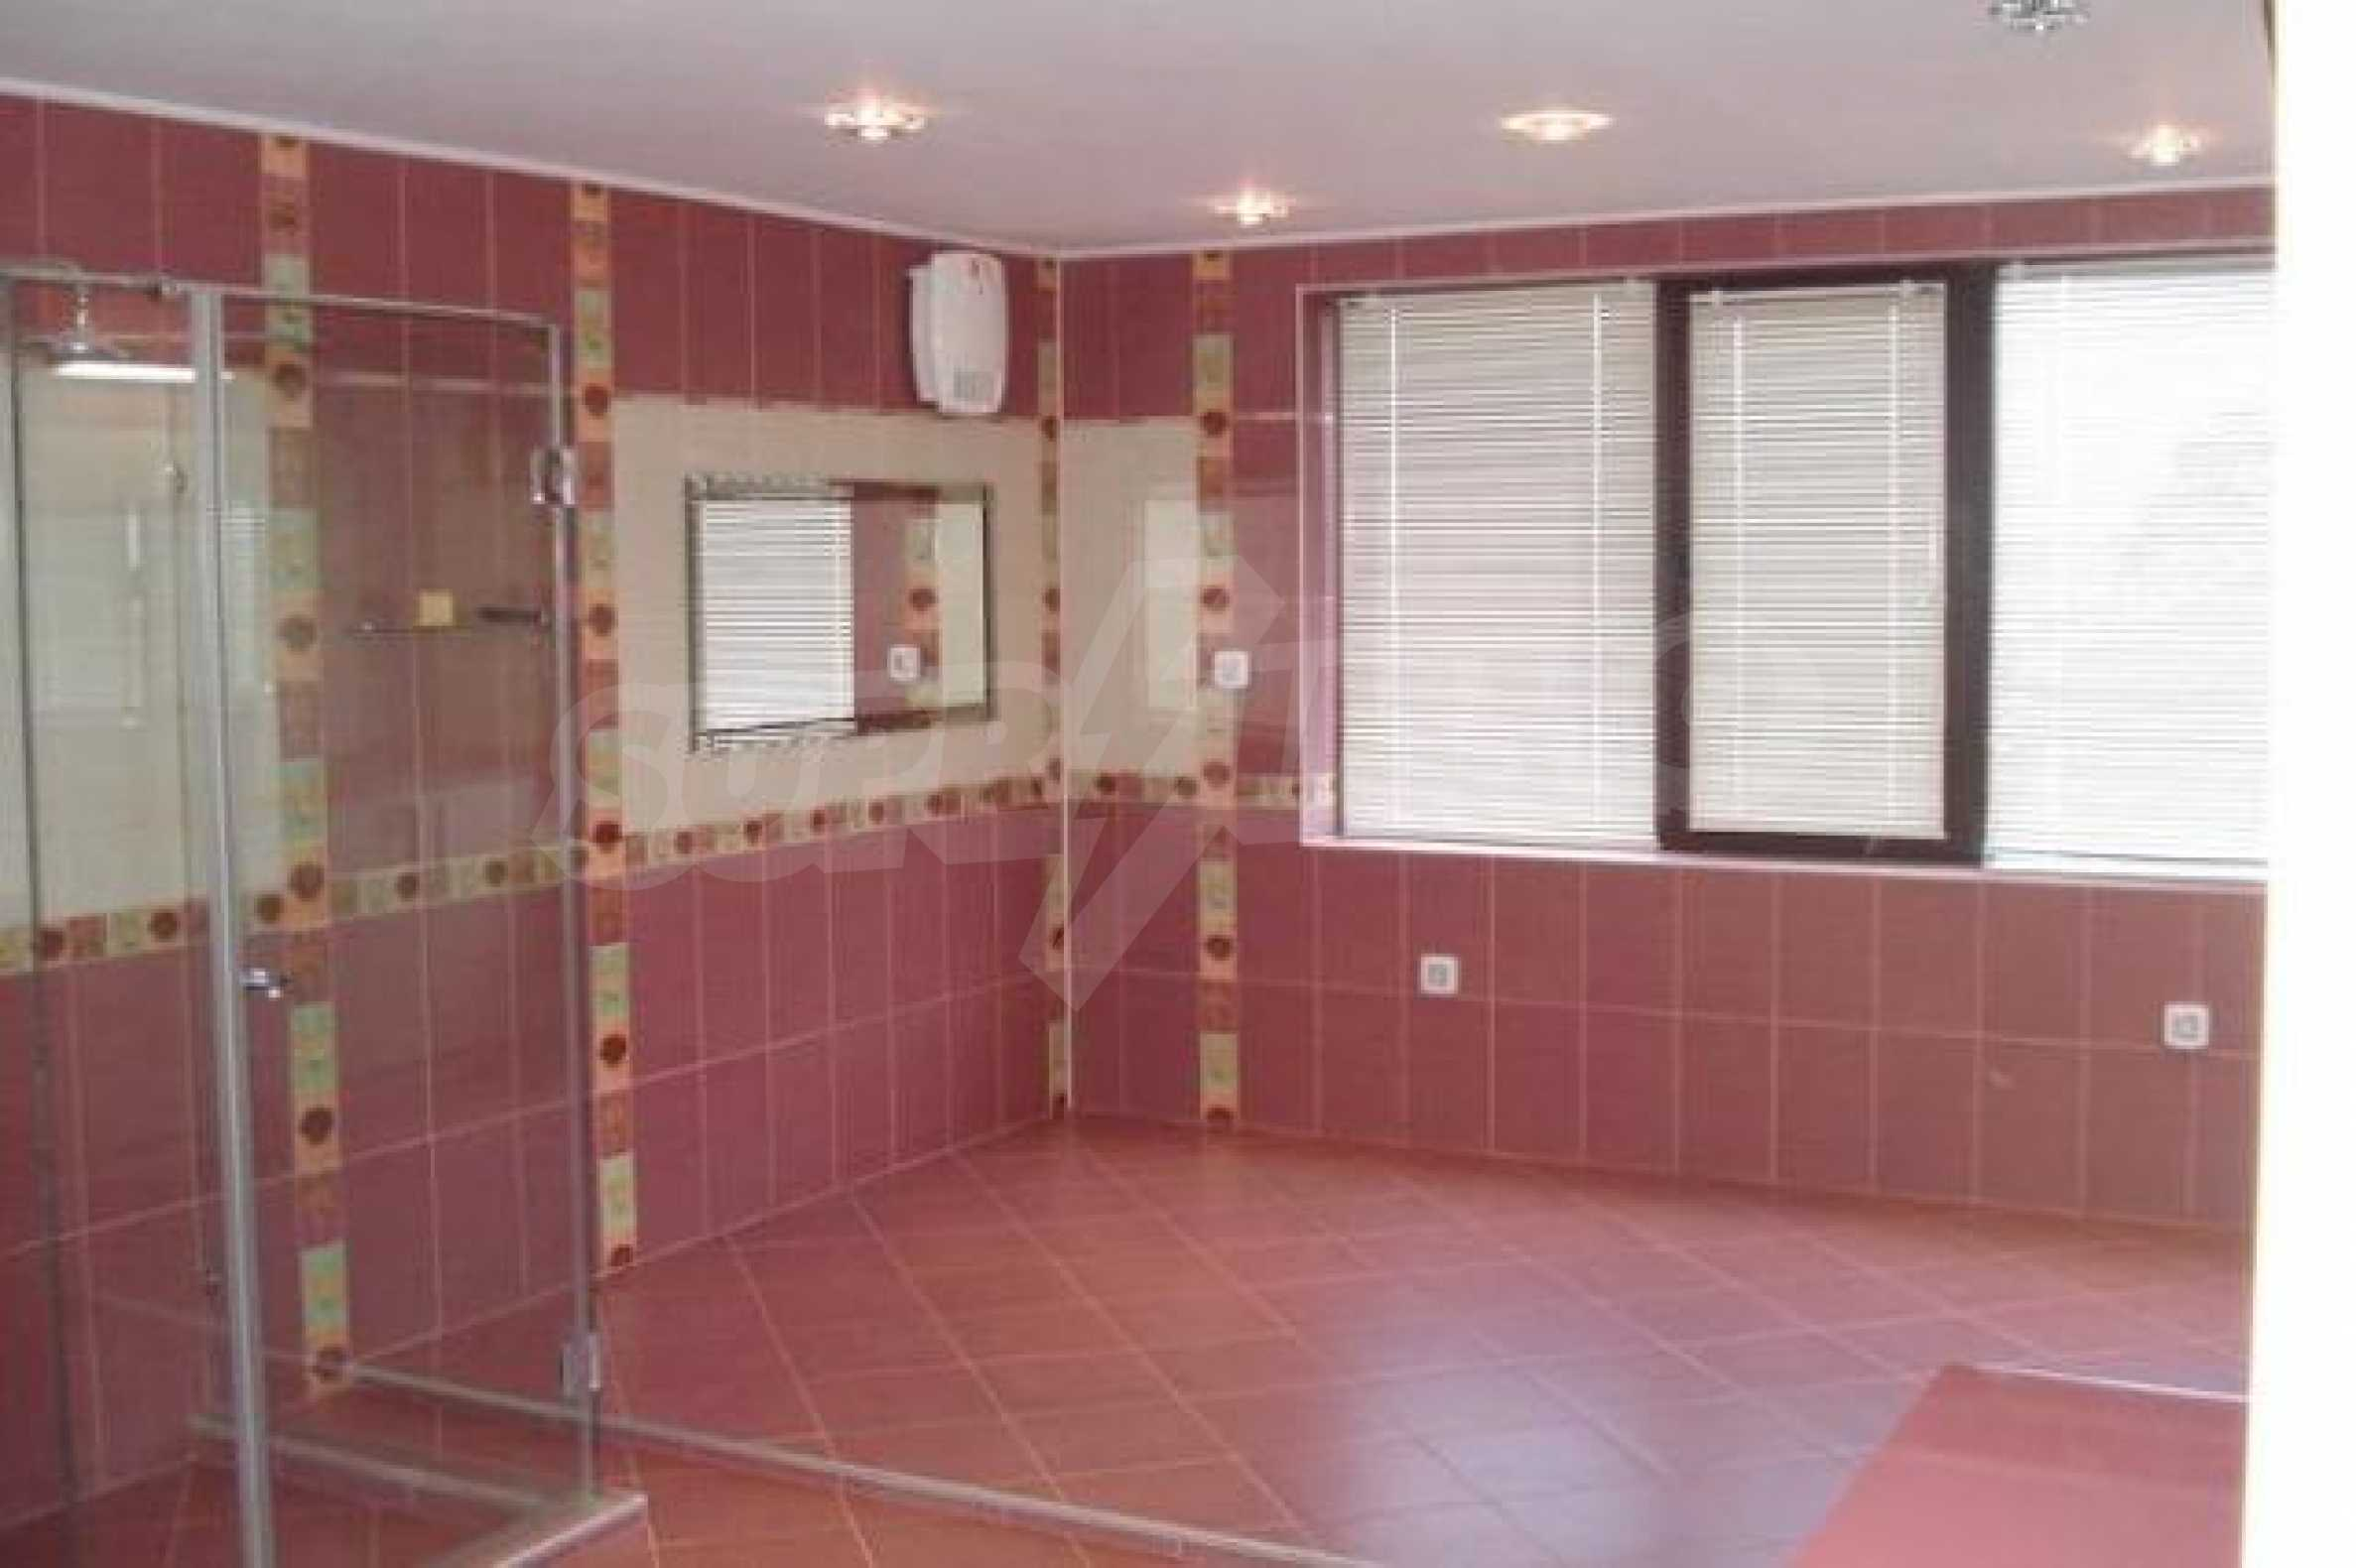 3-bedroom apartment for sale in Pomorie 19